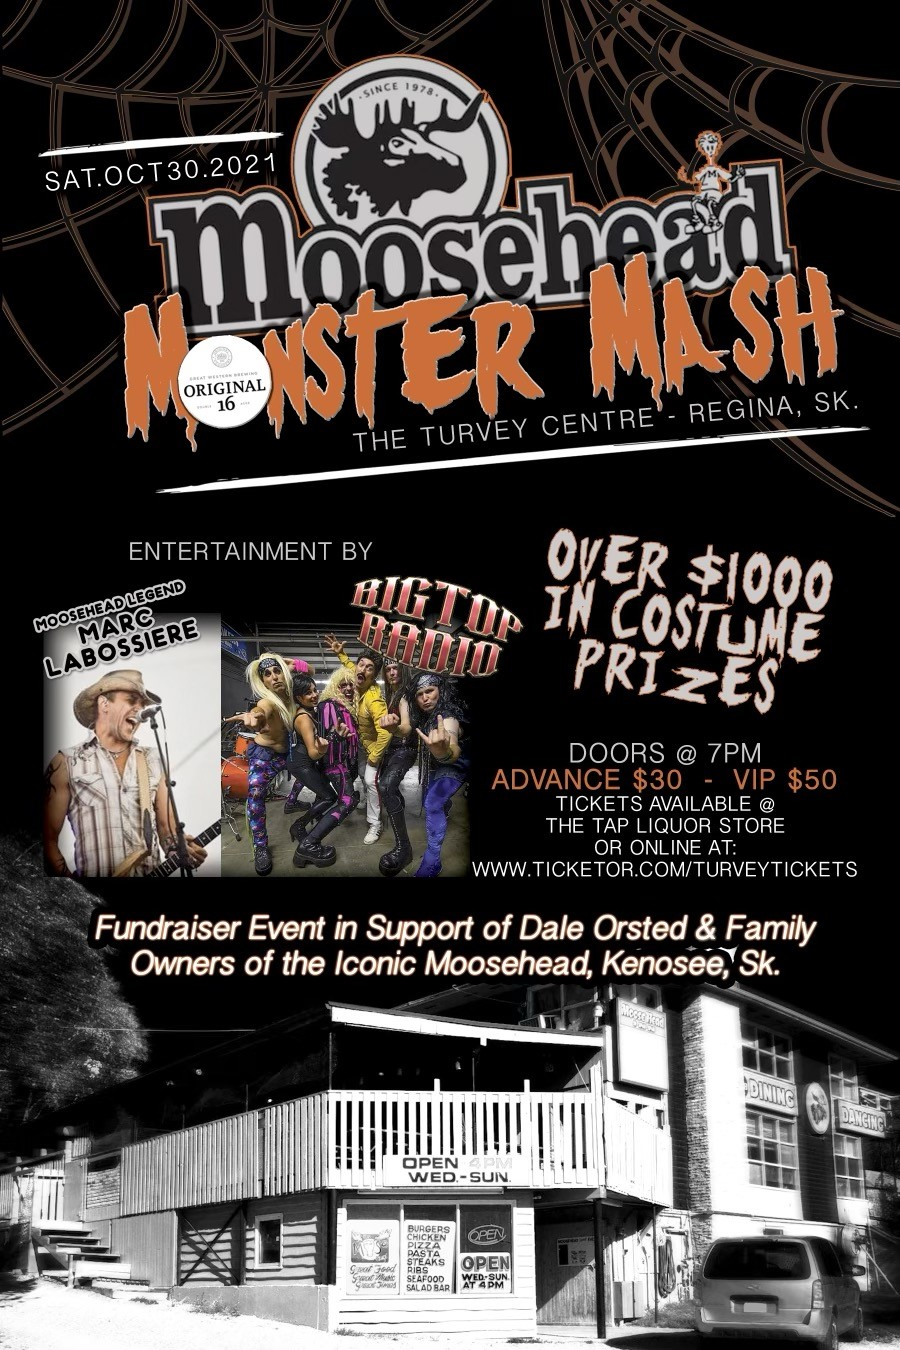 MOOSEHEAD MONSTER BASH MARC LABOSSIERE & BIG TOP RADIO on Oct 30, 19:00@TURVEY C - Buy tickets and Get information on Turvey Convention Center